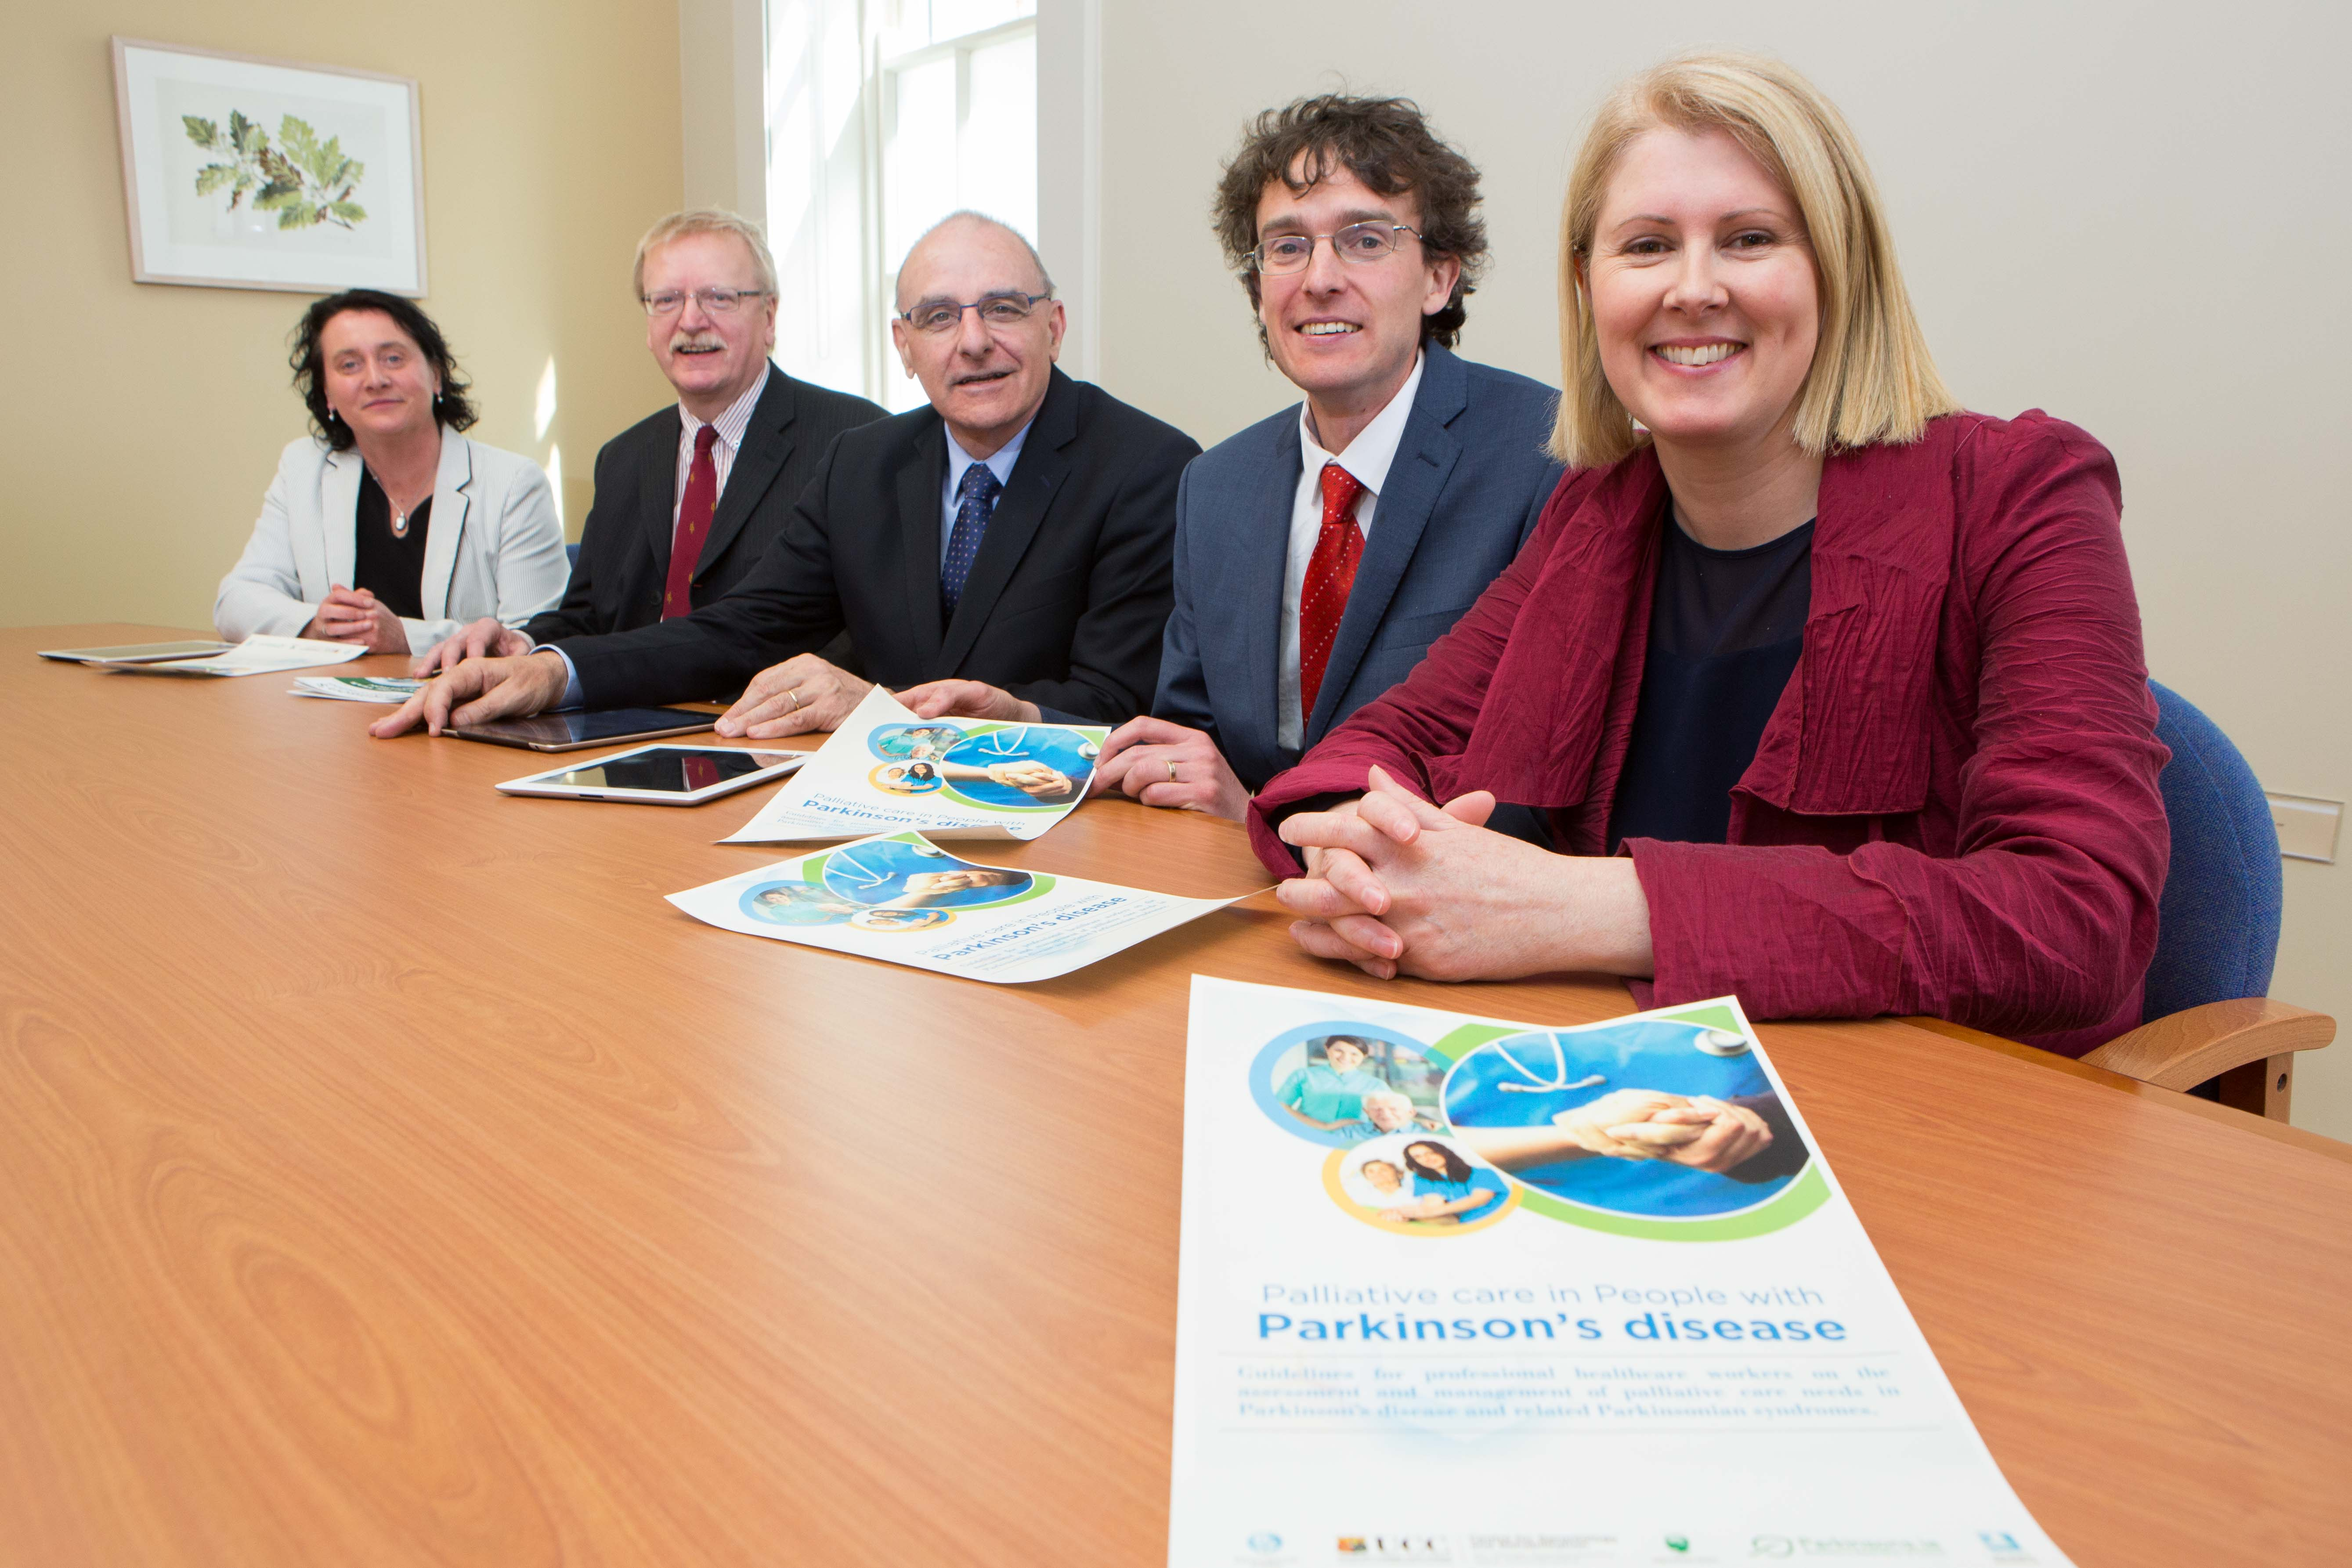 Official launch of the 'Palliative Care in People Parkinson's Disease' Guidelines